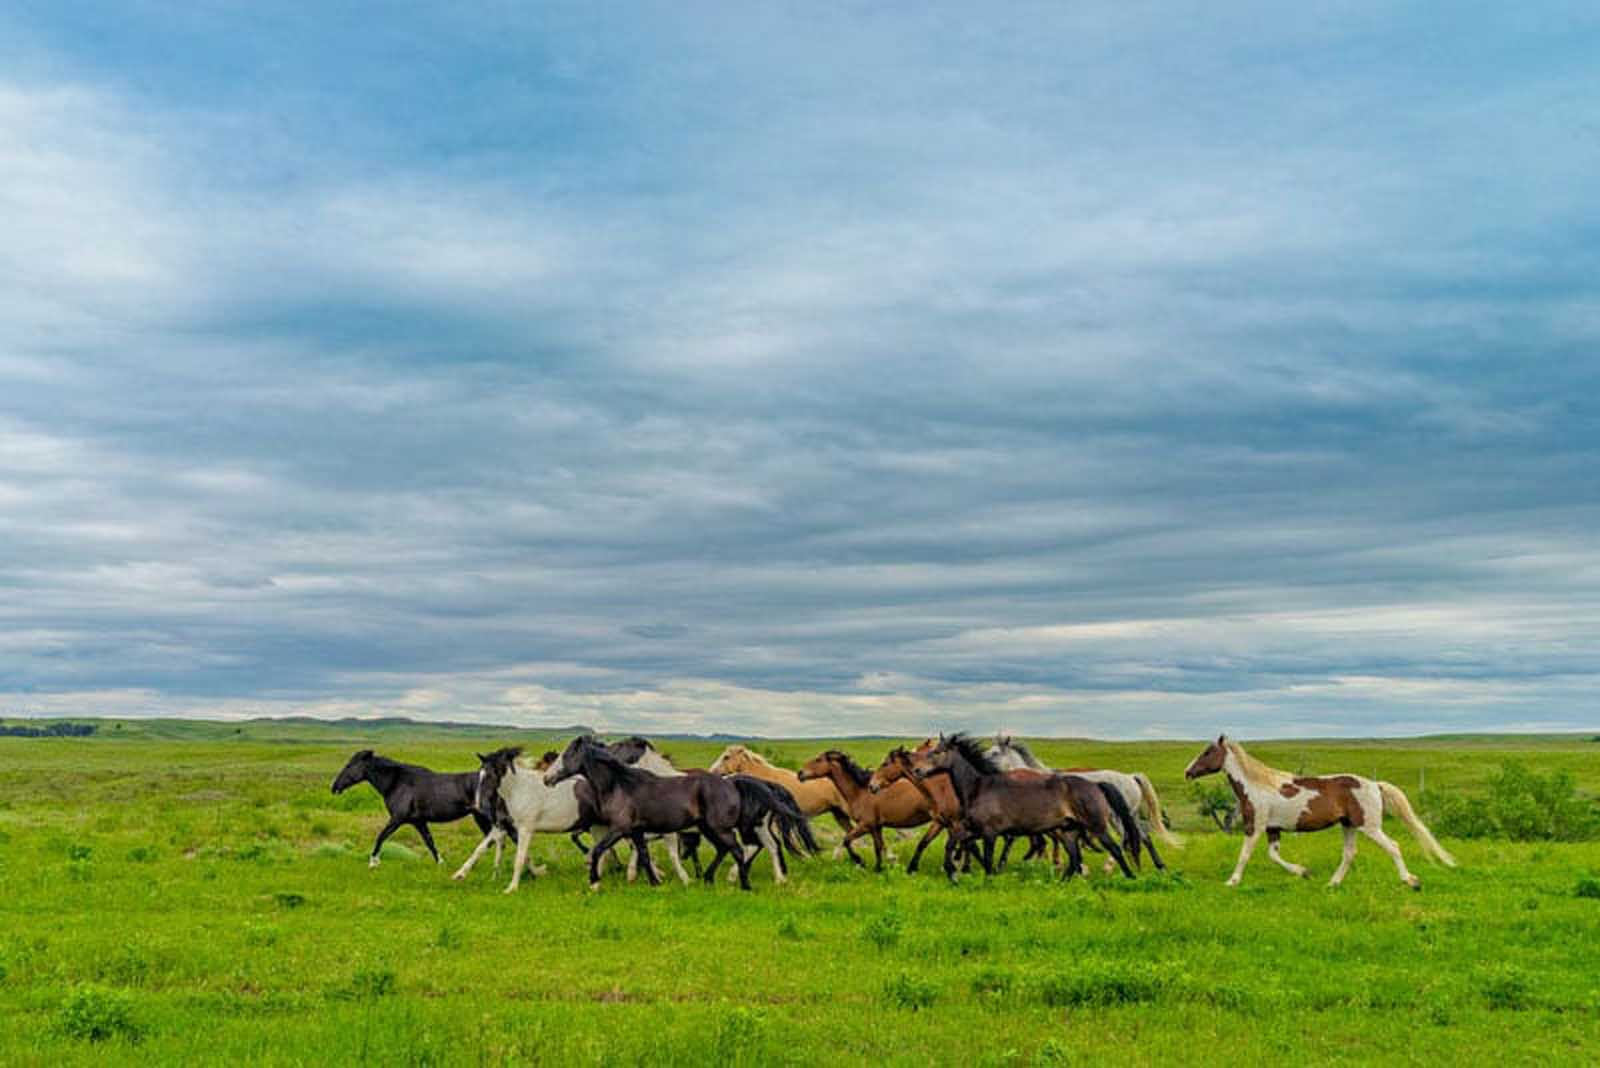 south dakota attractions mustangs